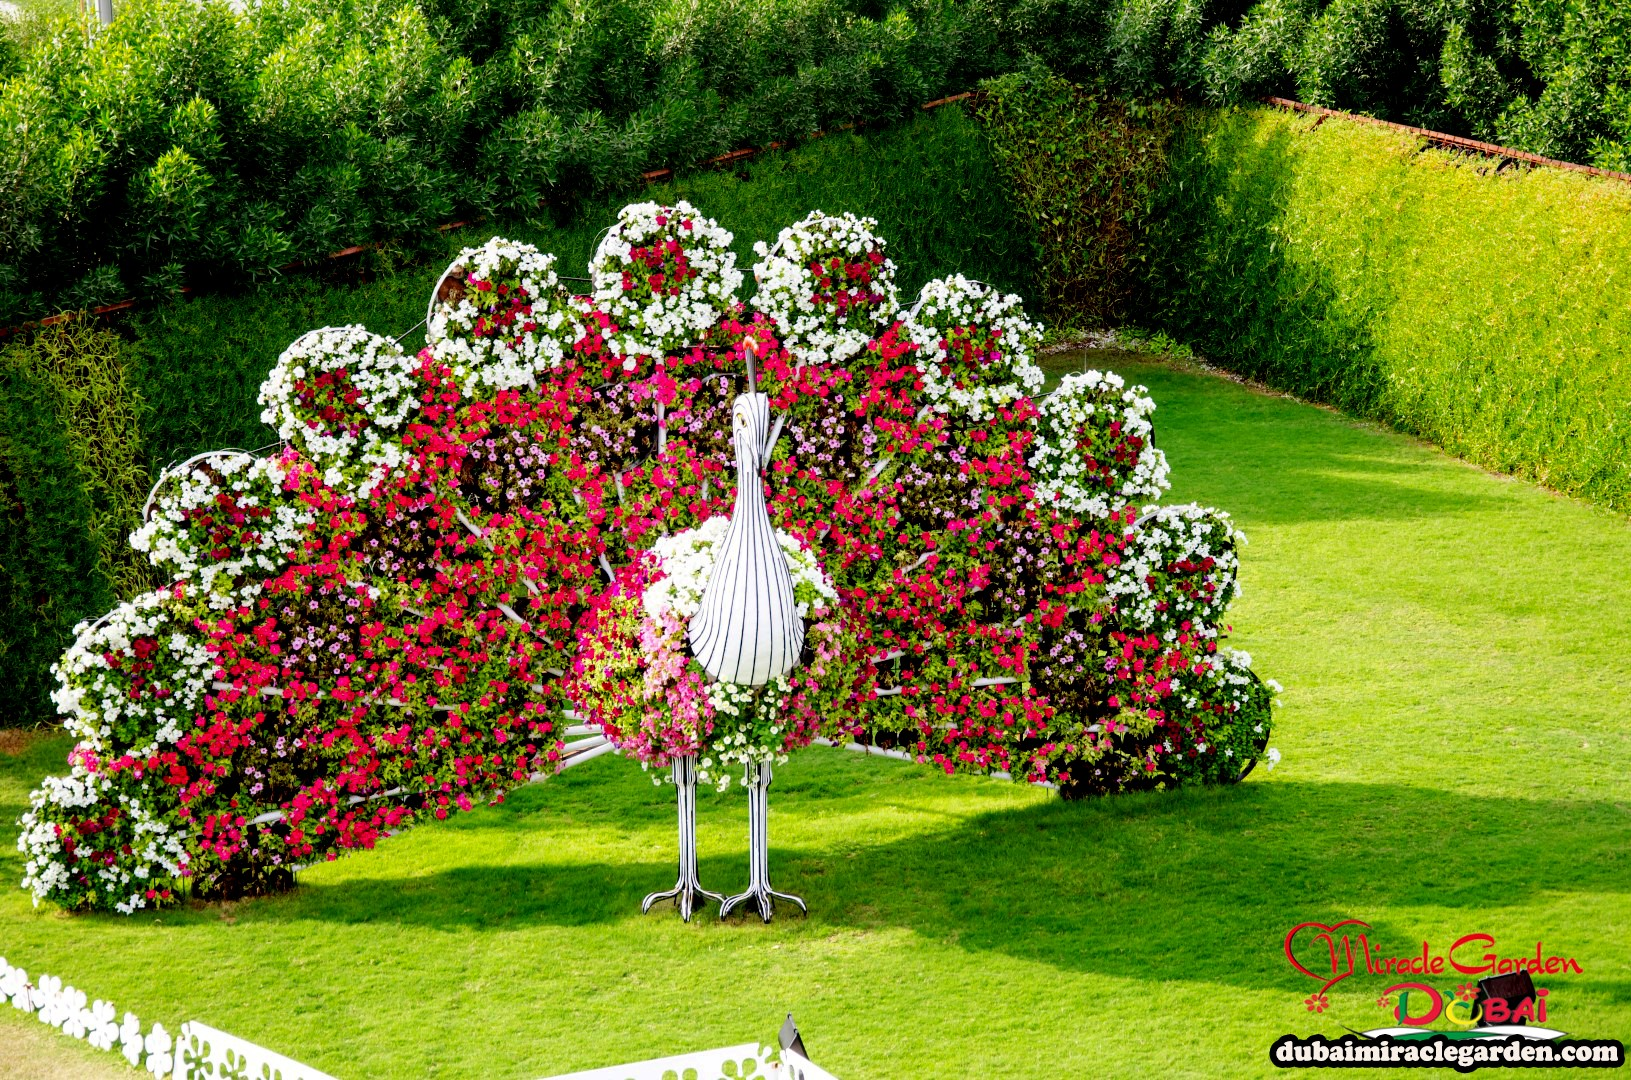 Dubai miracle garden the world 39 s biggest natural flower for Flower landscape